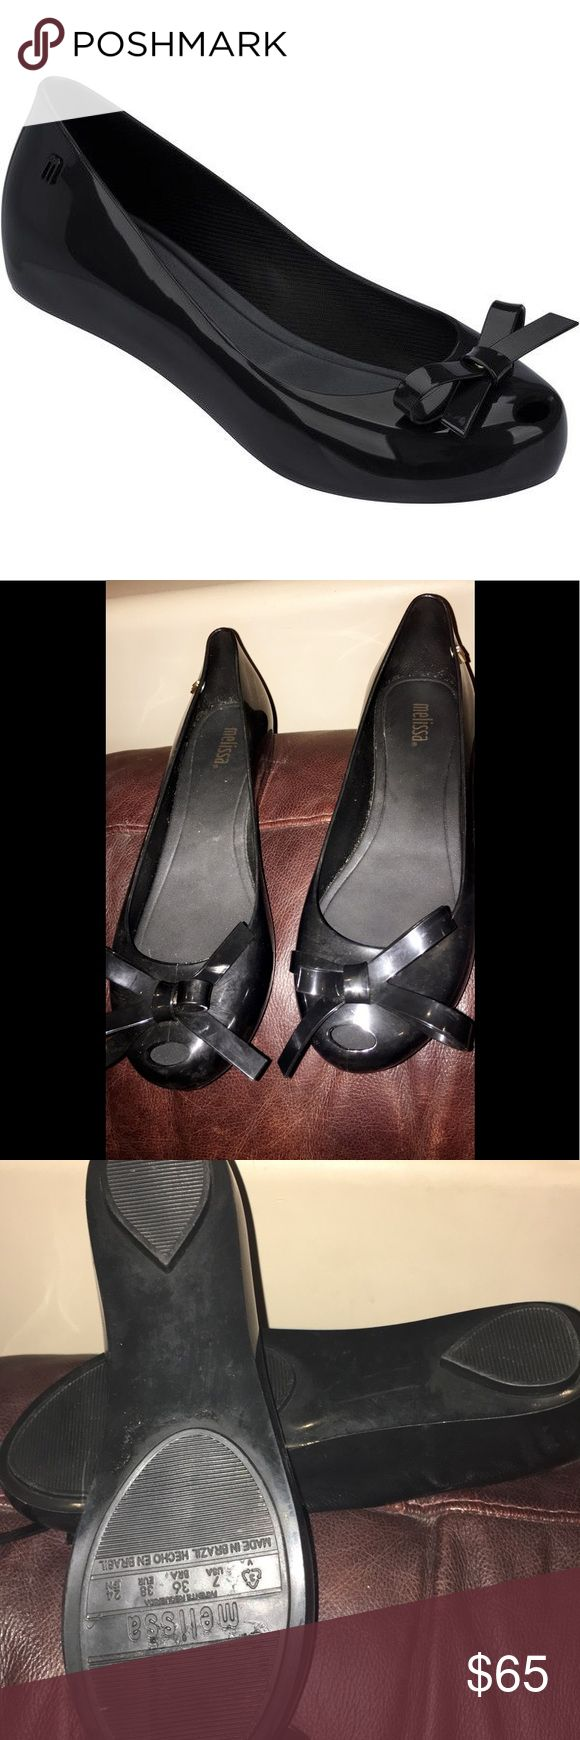 MELISSA Melissa Ultragirl Bow Ad Black $93.20 Description •  Brand: Melissa •  Color: Black •  Style: Ballerinas •  Composition: Made with PVC 100% recyclable •  Origin: Made in Brazil ECO-FRIENDLY  VEGAN-FRIENDLY Melissa Shoes Flats & Loafers